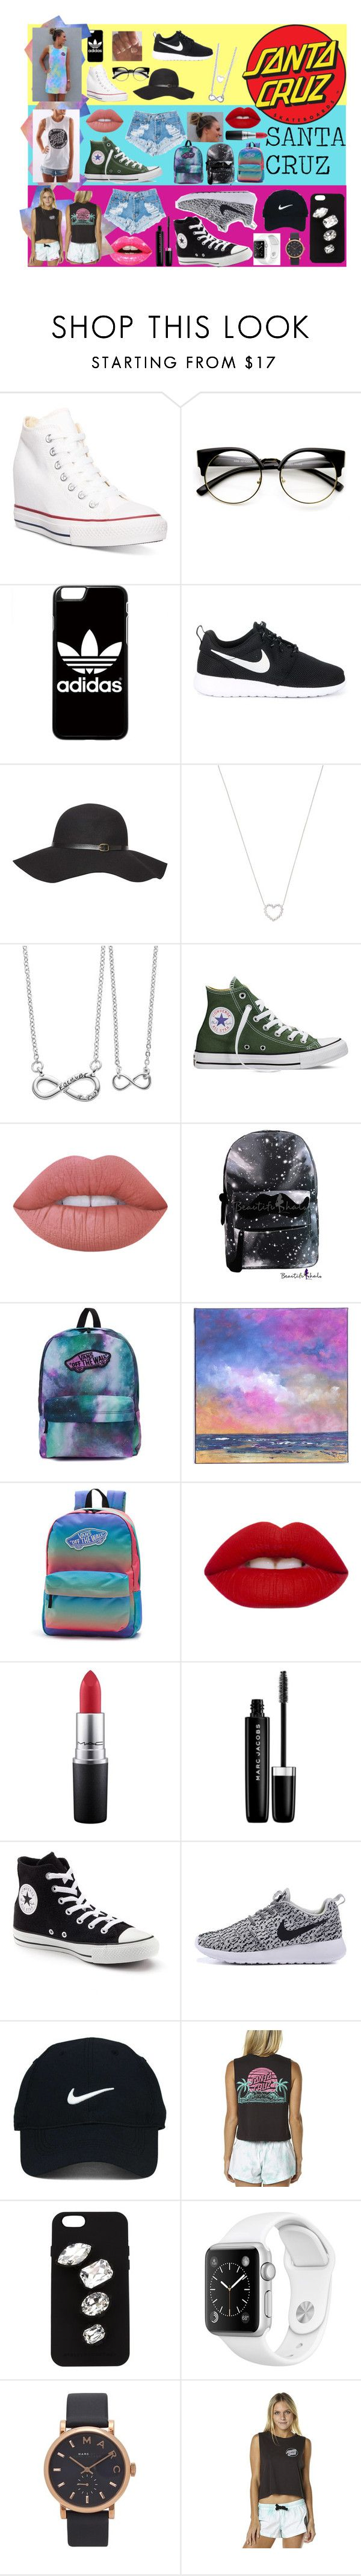 - Santa Cruz -  by lidage on Polyvore featuring Santa Cruz Skateboards, Converse, NIKE, Vans, Marc Jacobs, Side by Side, Tiffany & Co., STELLA McCARTNEY, Nike Golf and Dorothy Perkins